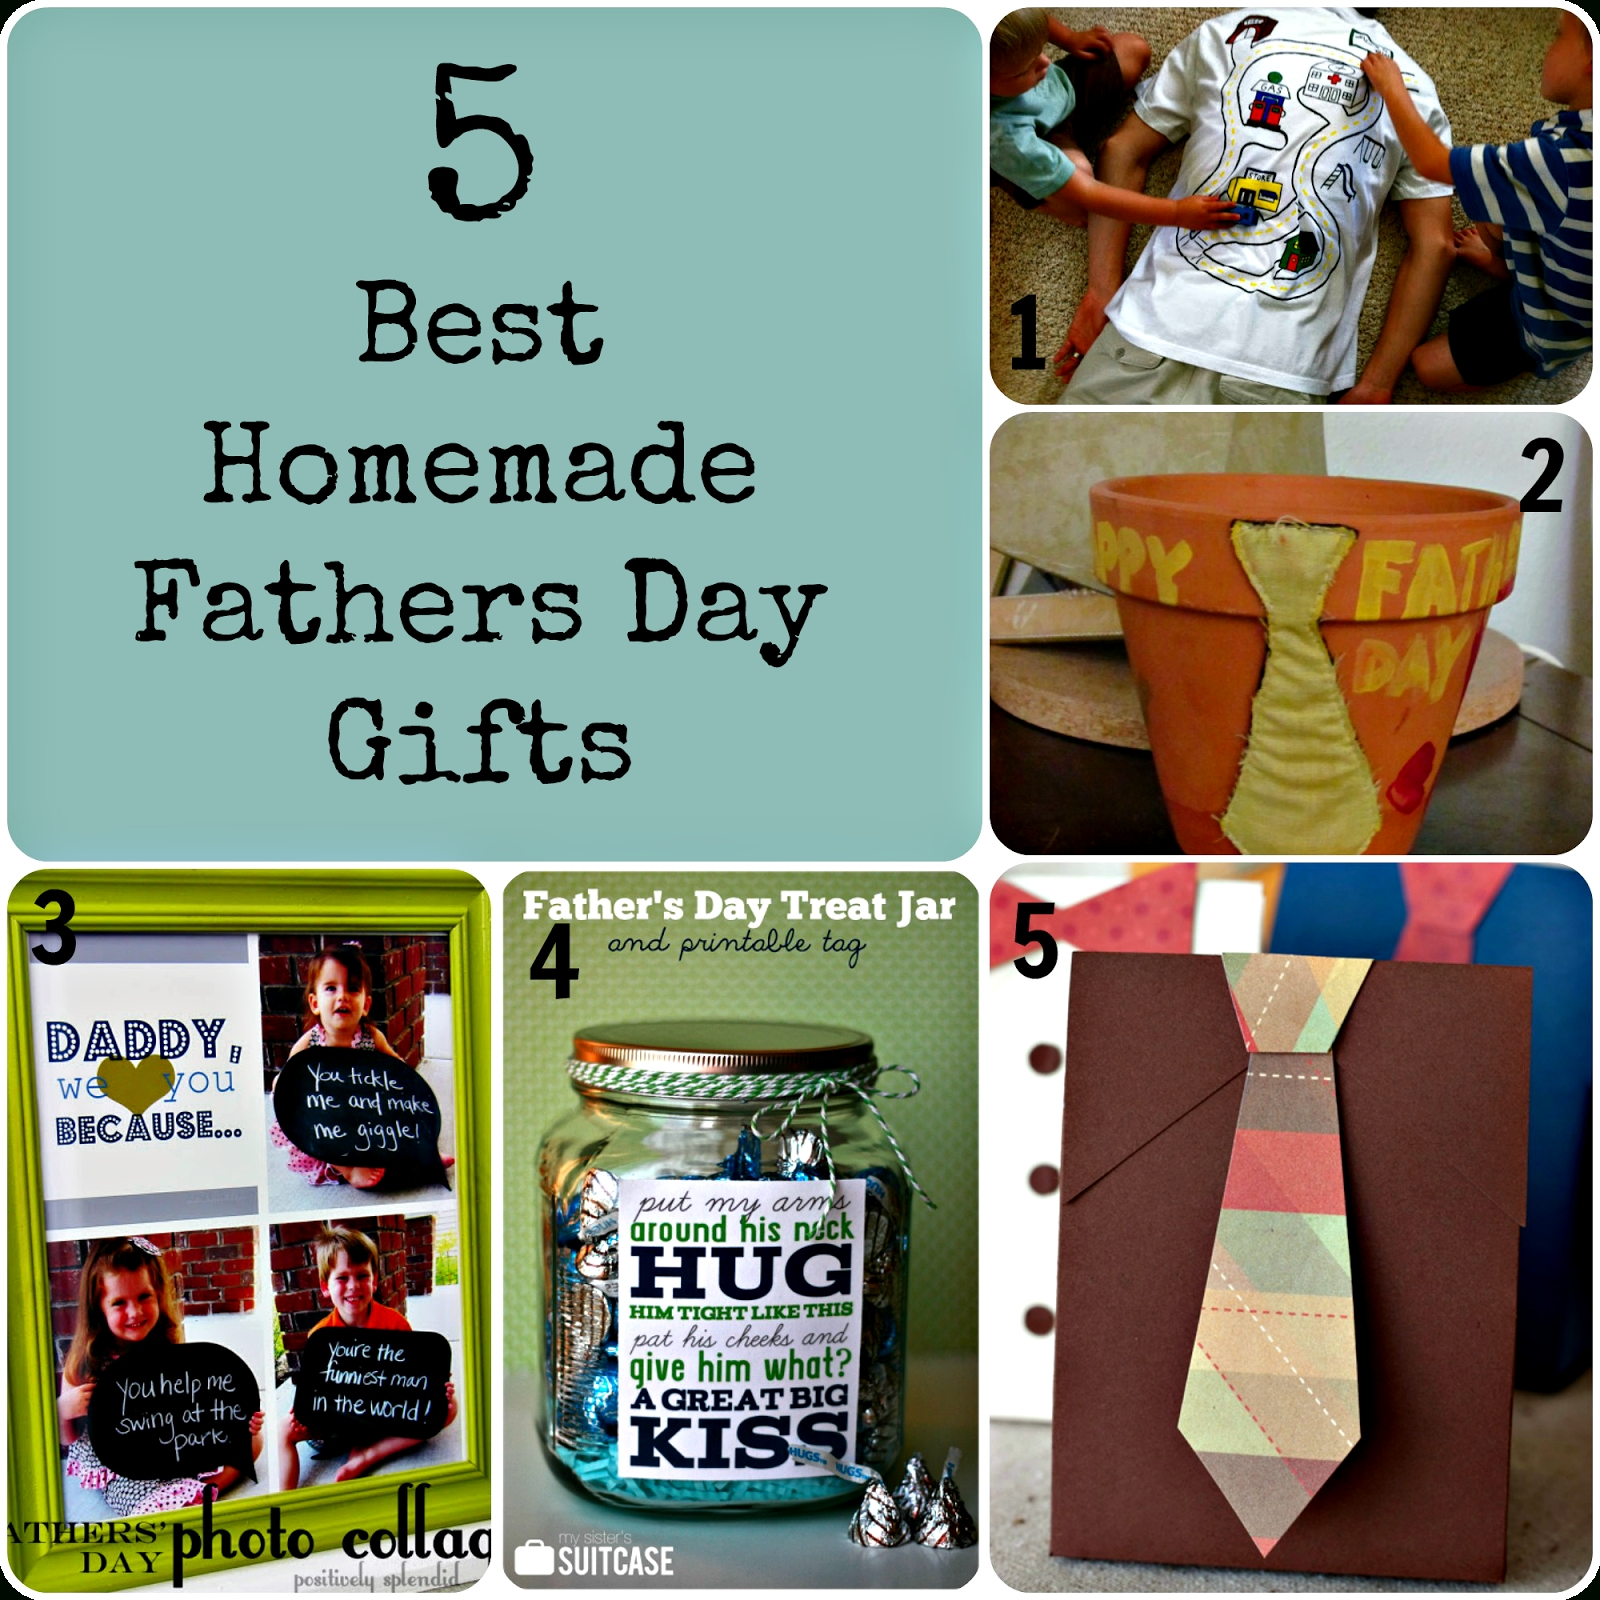 10 Unique Birthday Present Ideas For Dad Homemade Gifts From Daughter To View Further